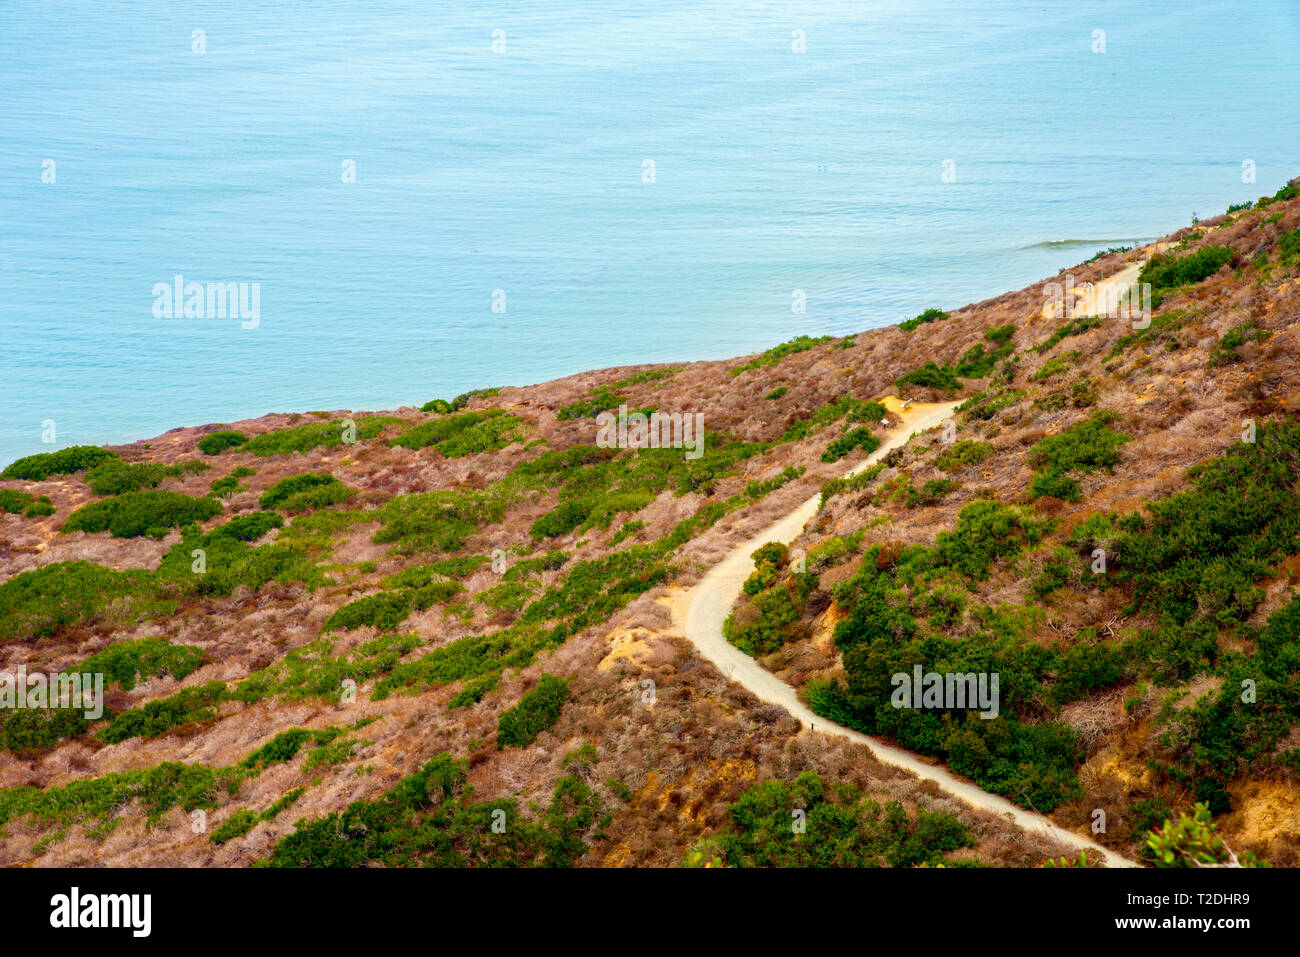 Looking down onto mountain road with blue ocean below. Road curving around mountainside. - Stock Image